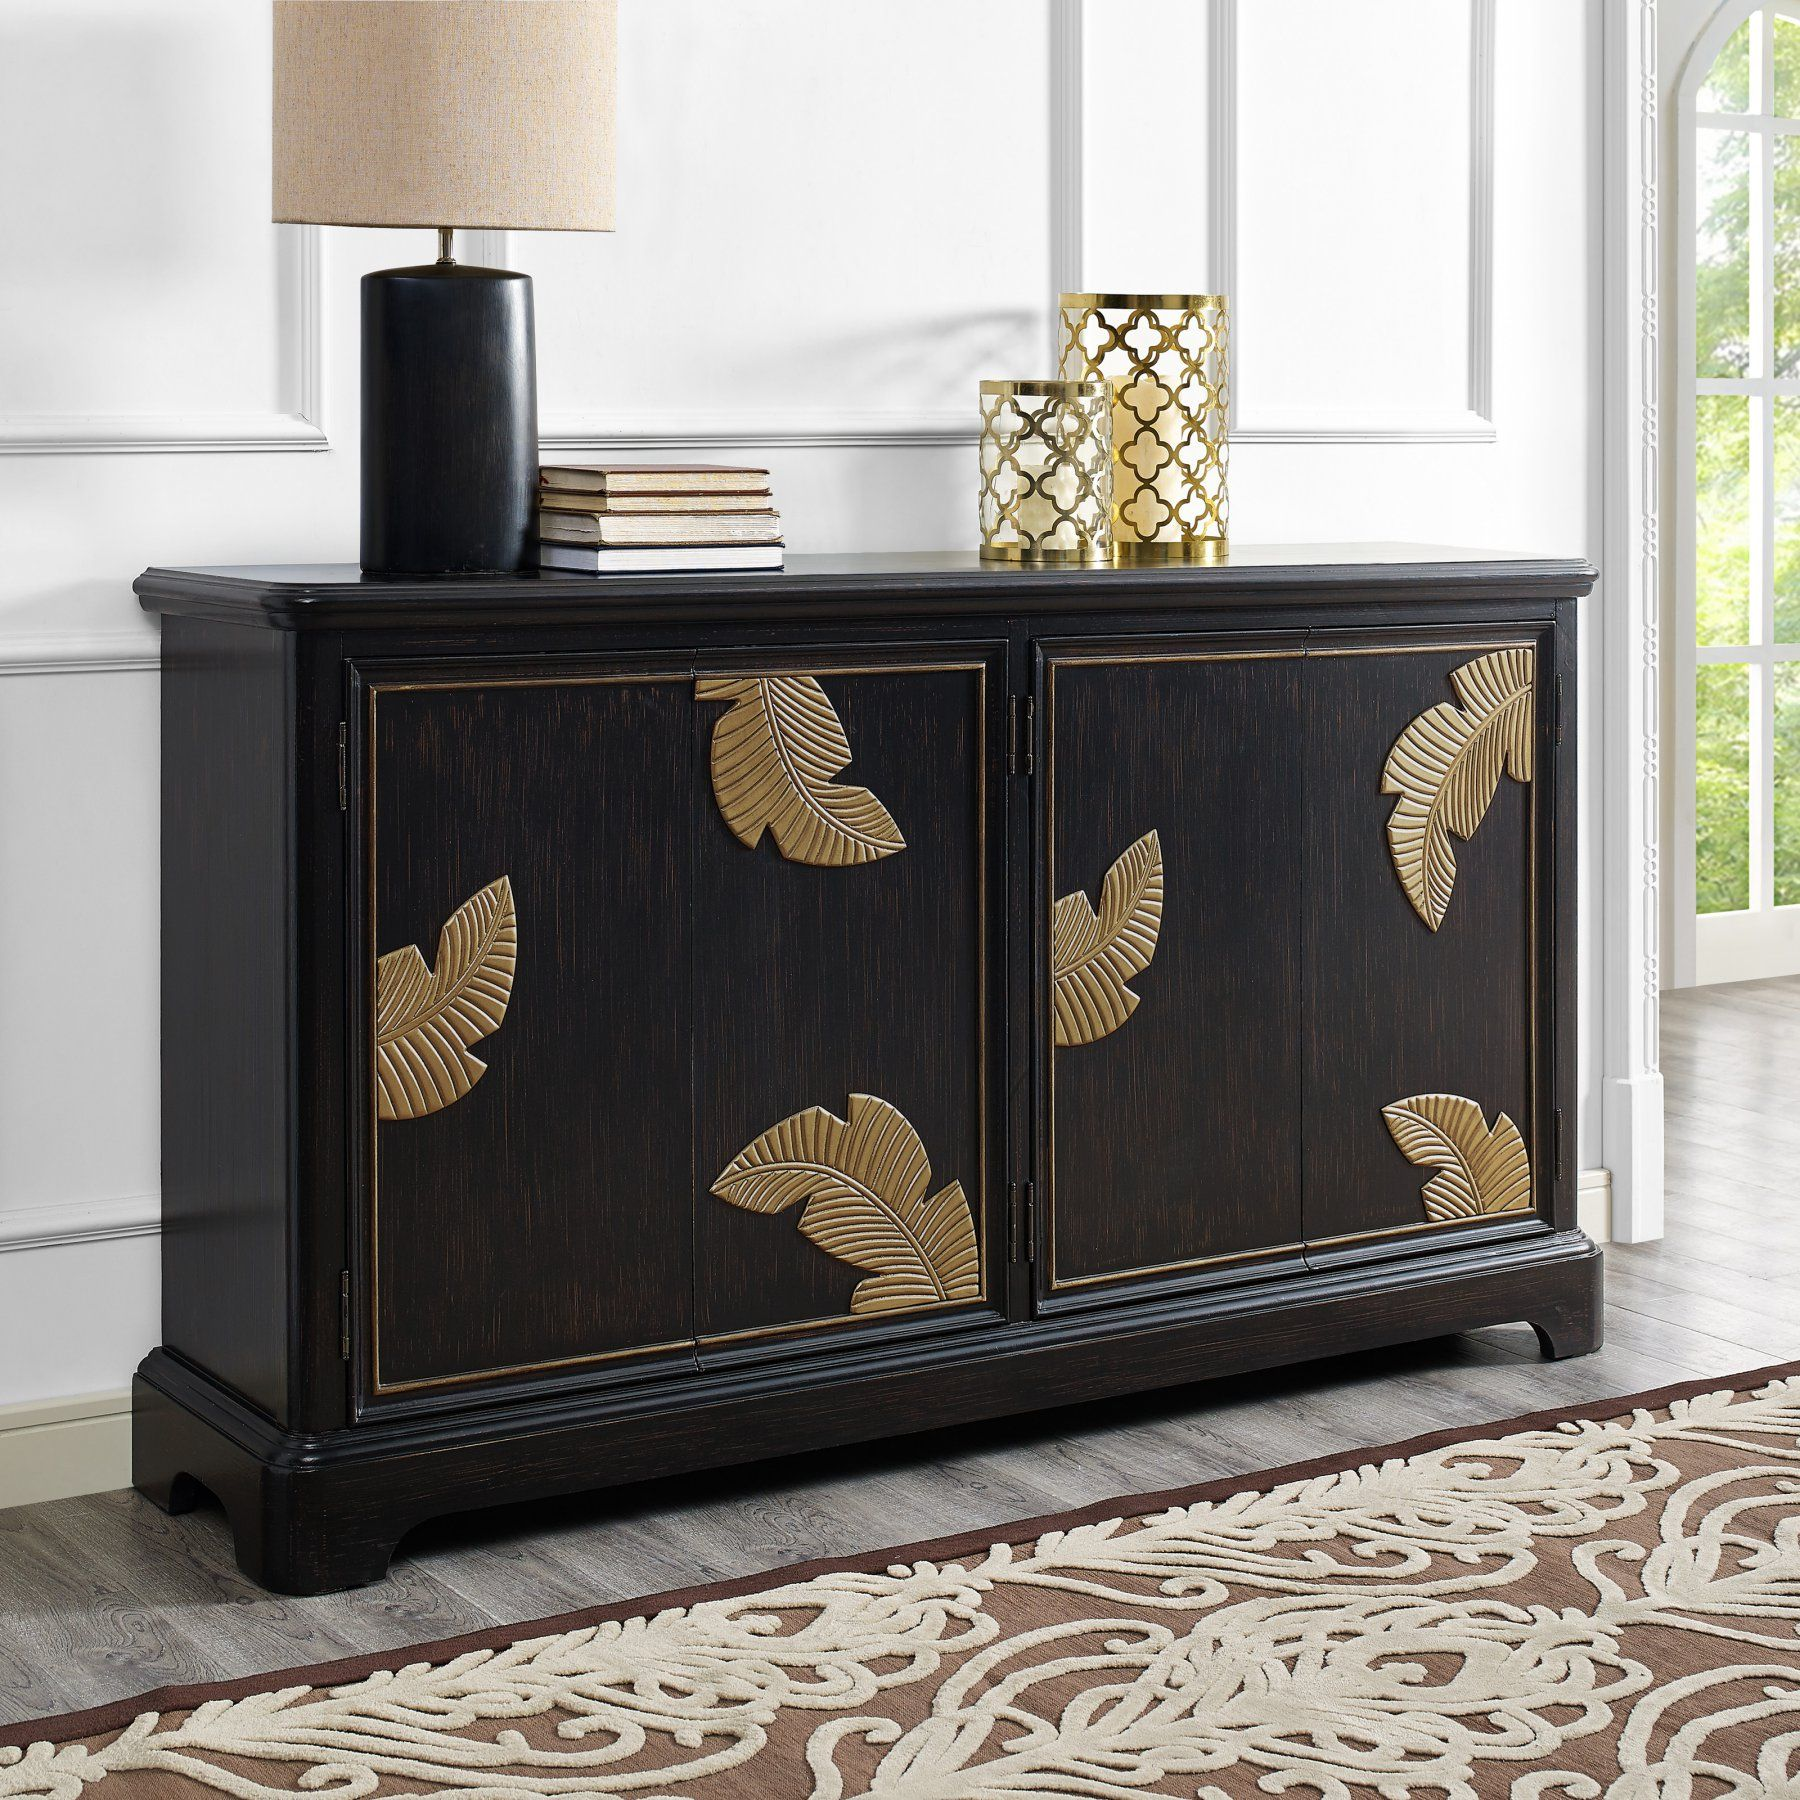 Right2Home Modern Textured and Distressed 4 Door Credenza ... on consoles and credenzas, made in usa modern credenzas, modern sideboards with sliding door, country style credenzas, industrial modern credenzas, post modern credenzas, modern sideboards and hutches,